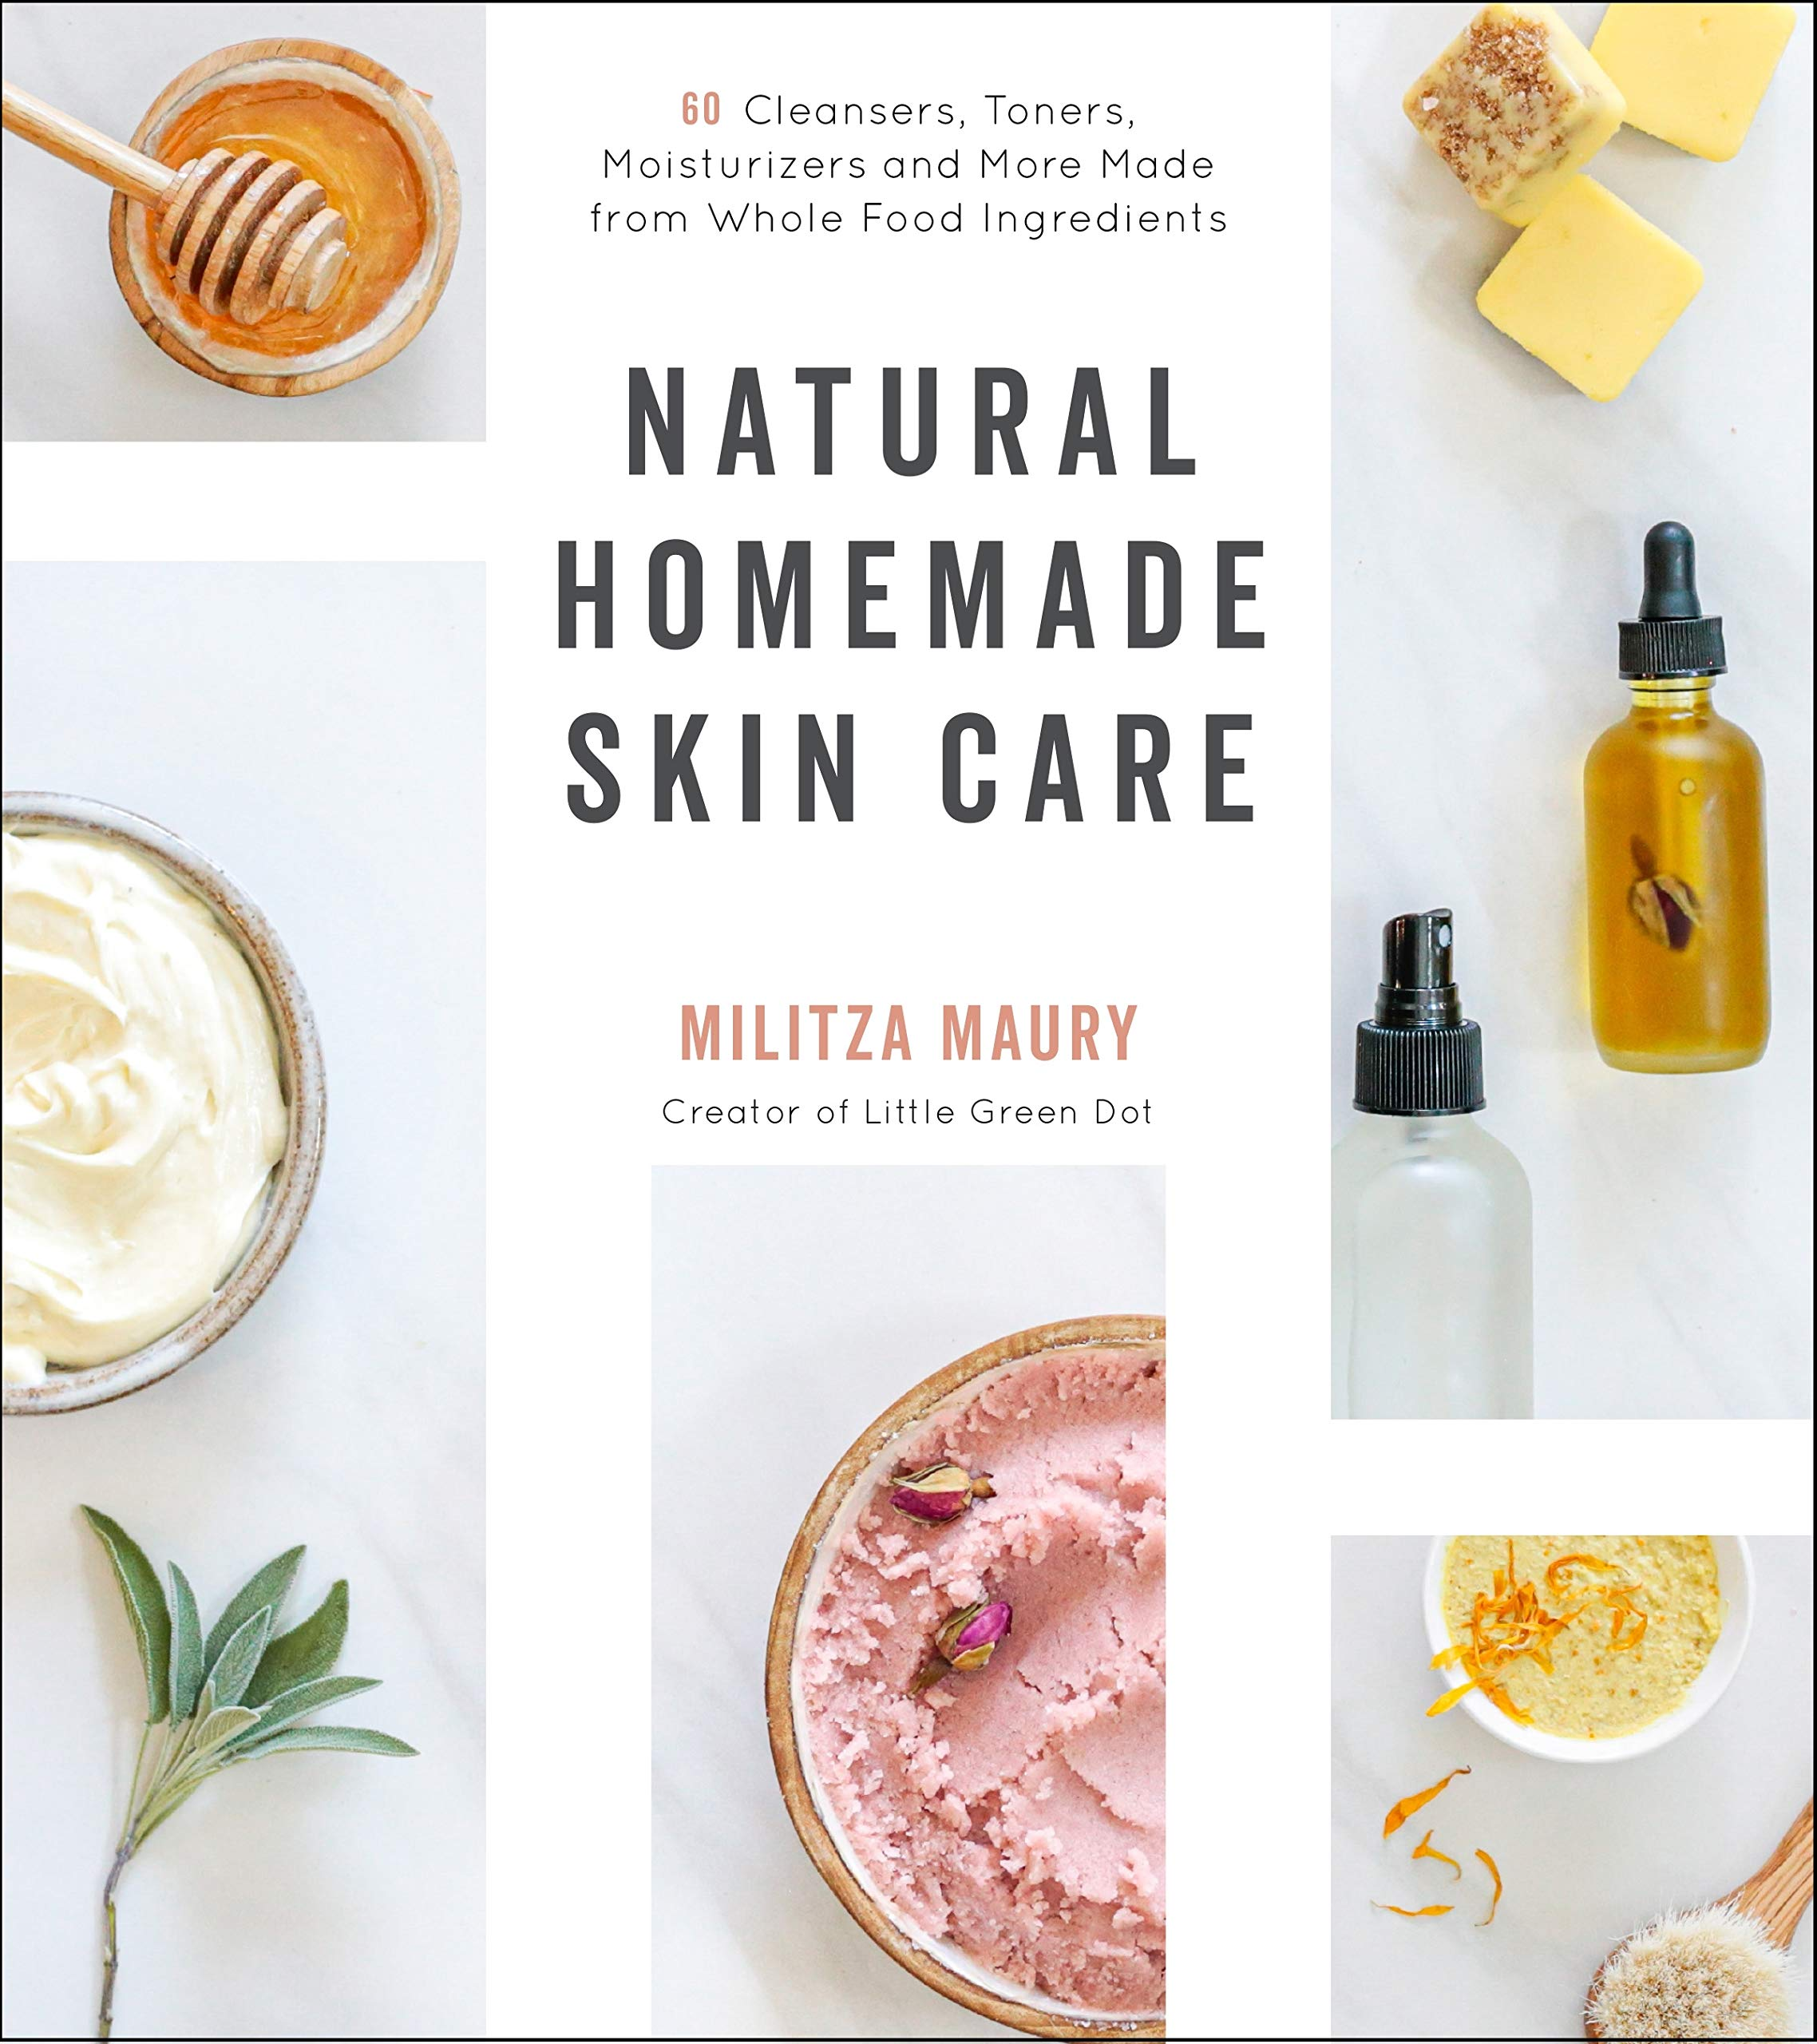 Natural Homemade Skin Care: 60 Cleansers, Toners, Moisturizers and More Made from Whole Food Ingredients 1